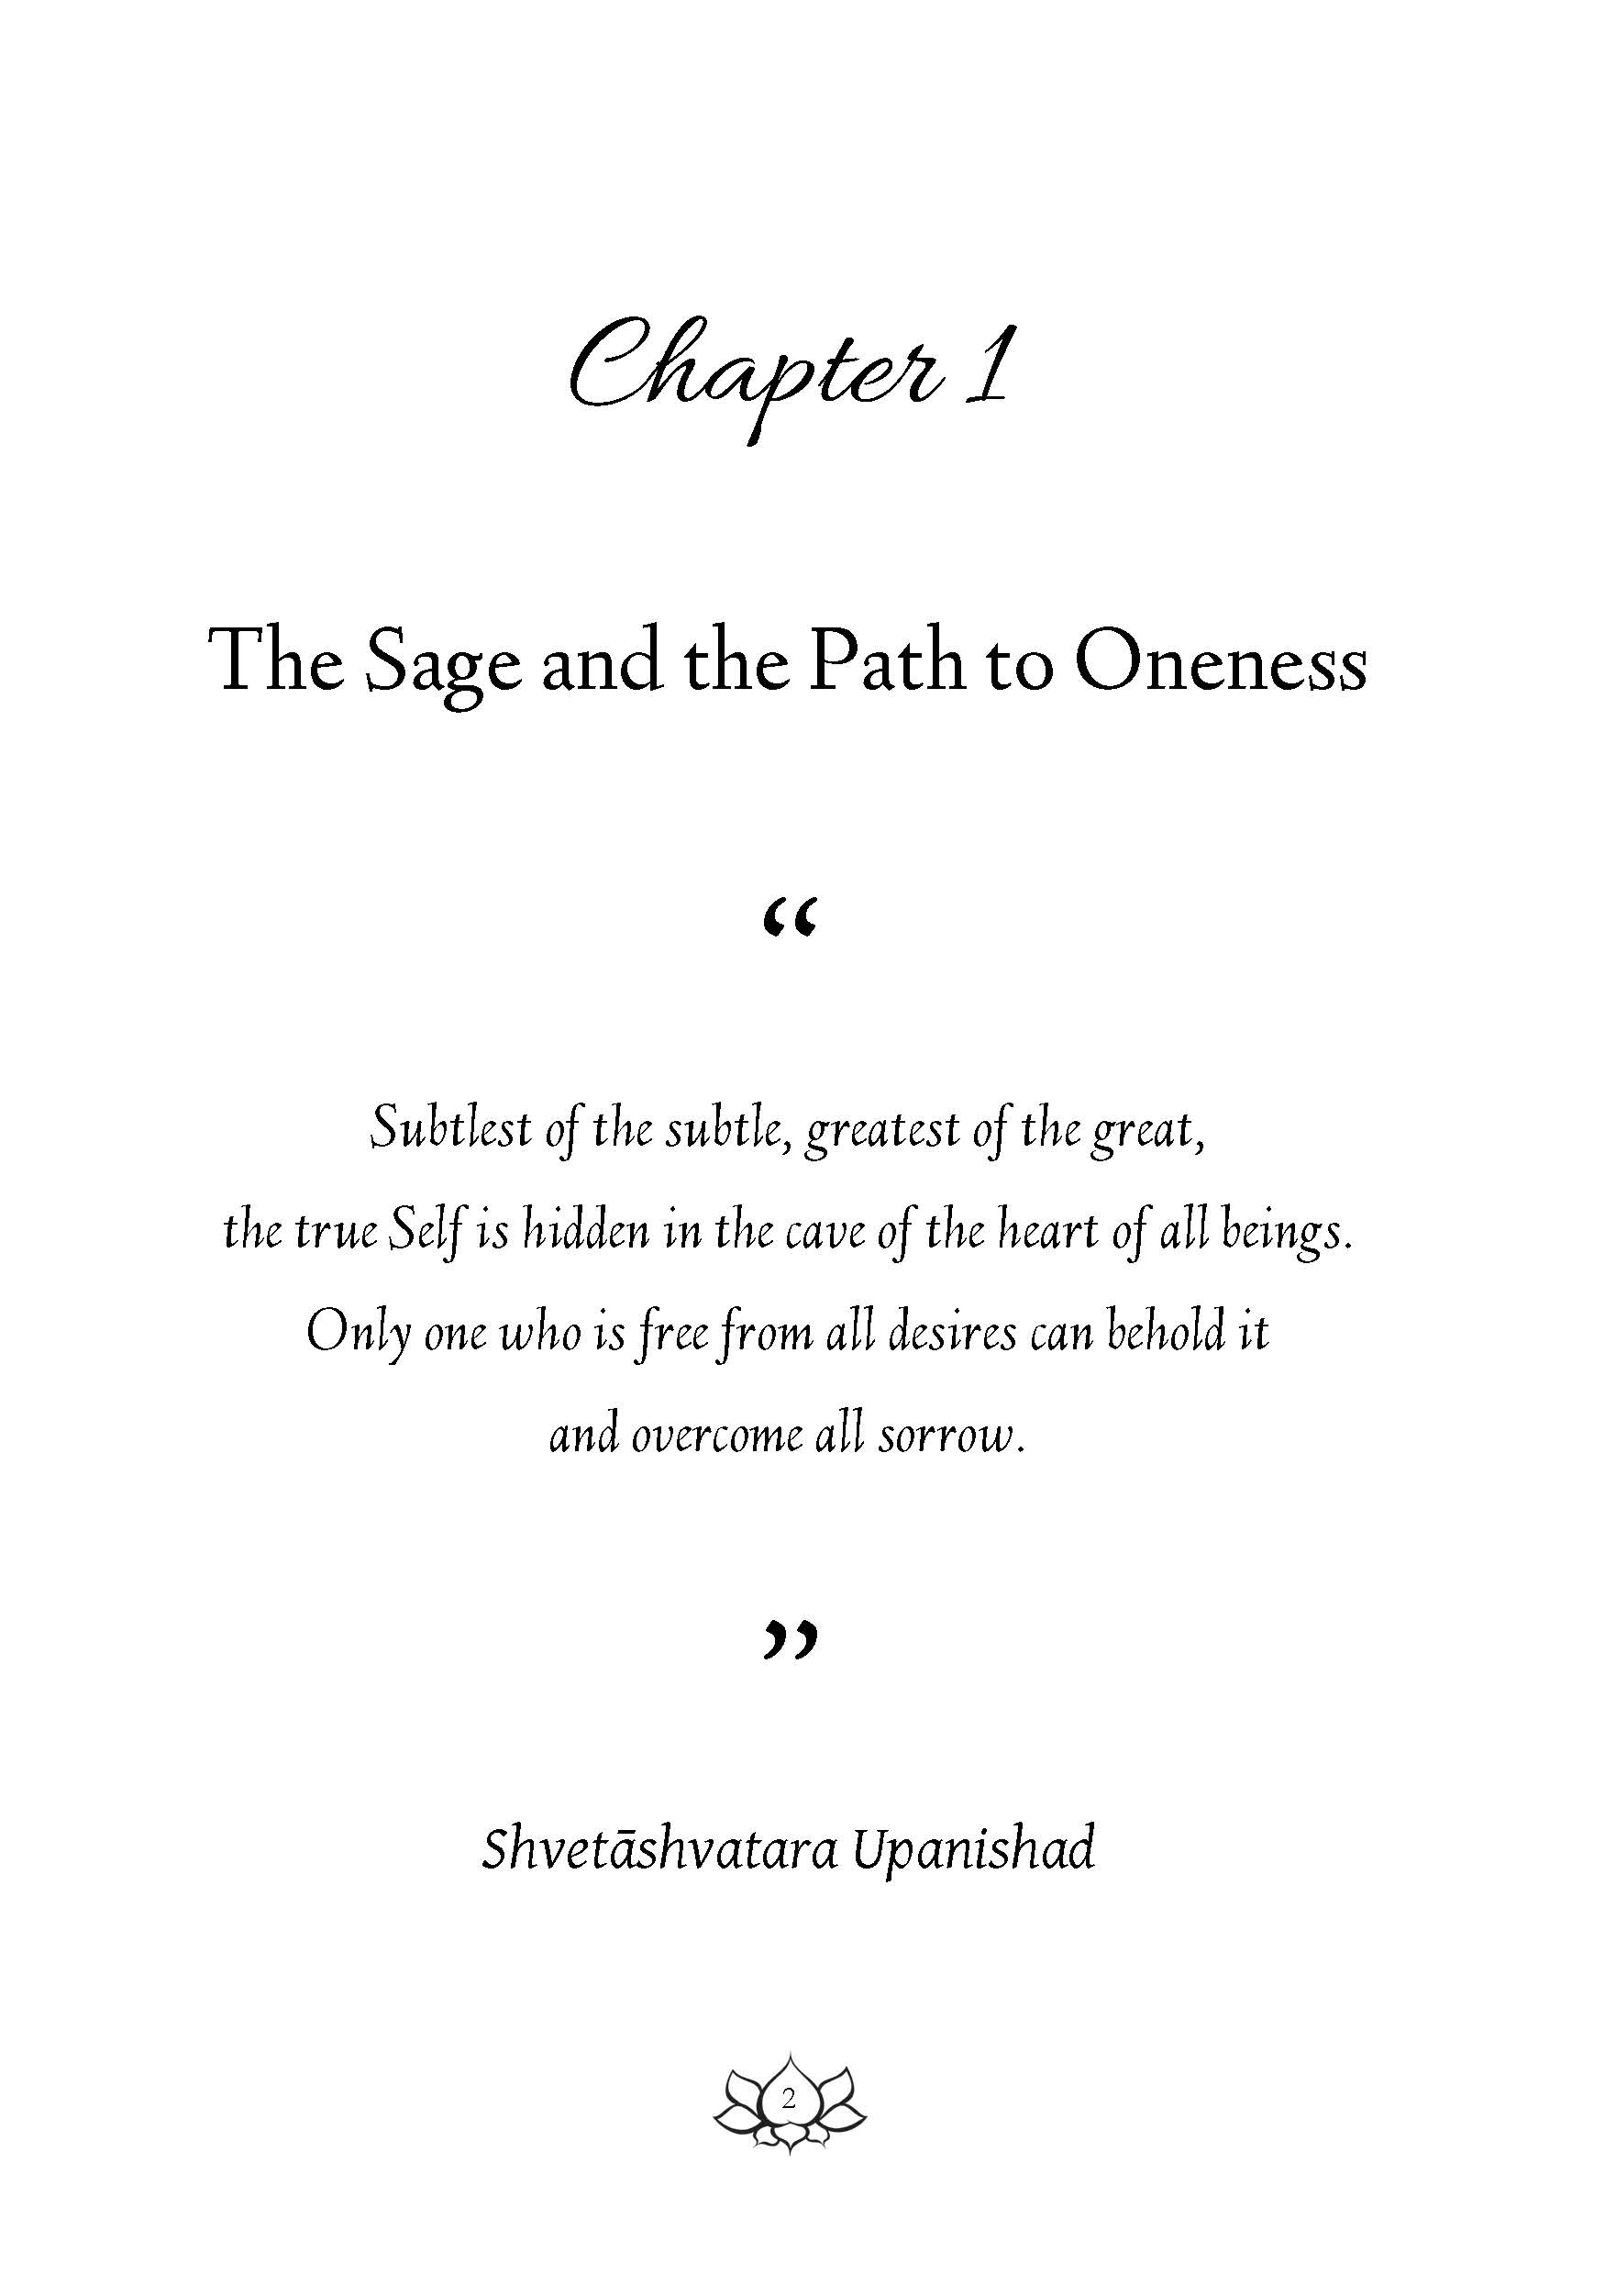 Awakening the Bliss of Being - PDF Download_Page_013